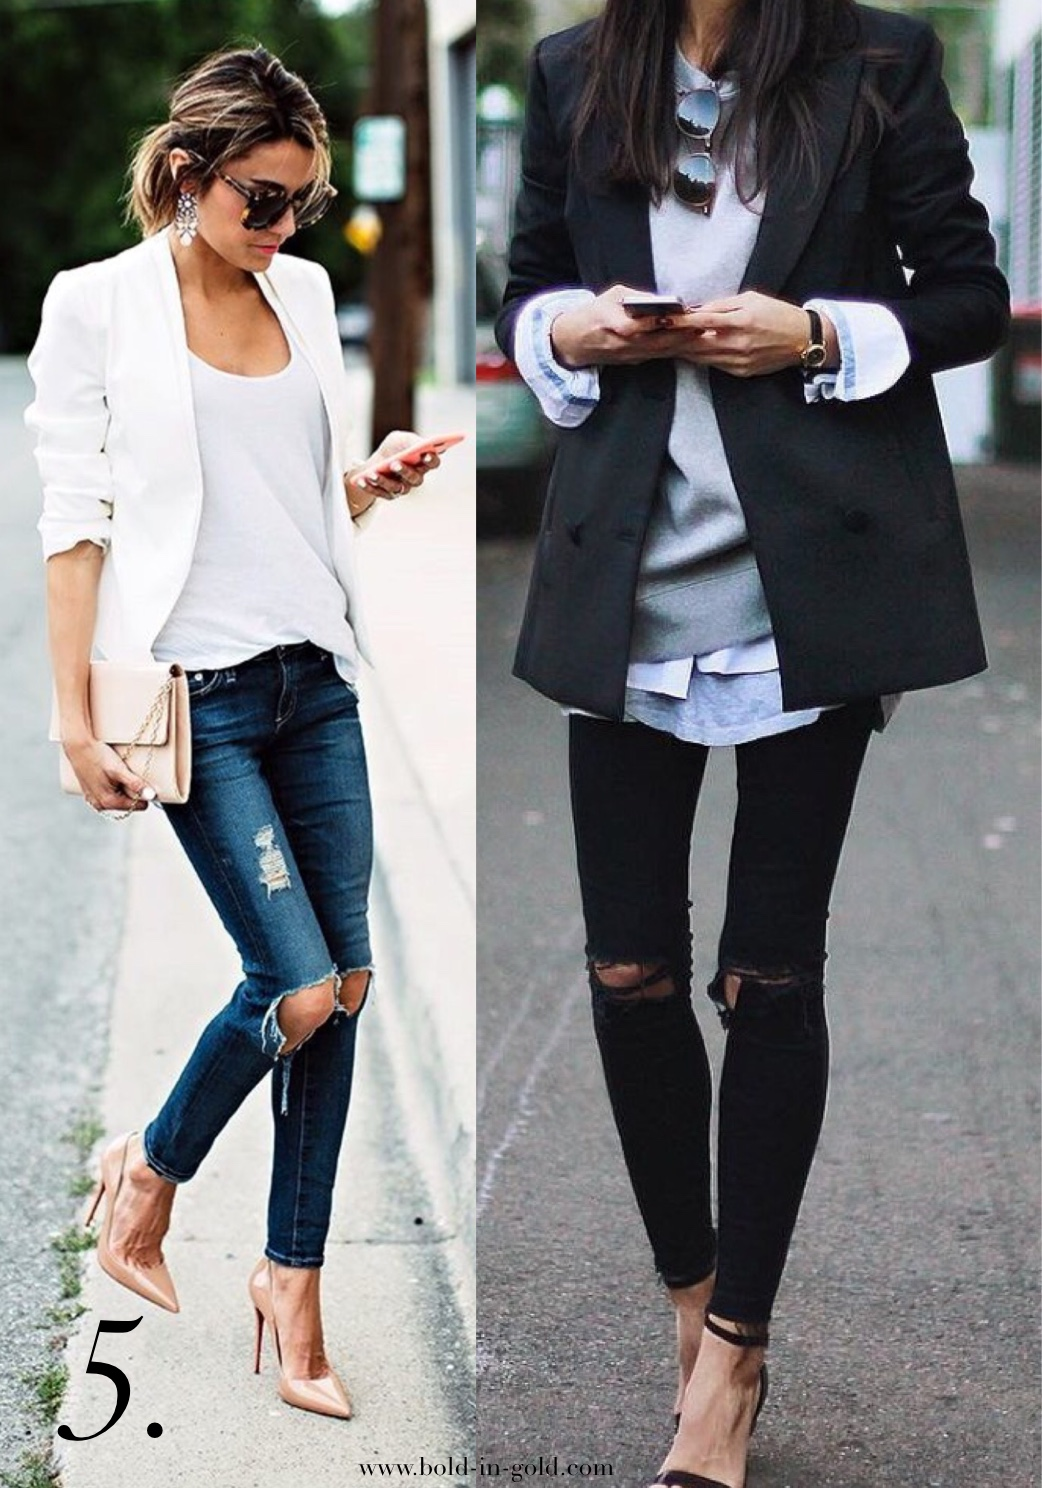 Photo of two women wearing classic blazers with ripped jeans